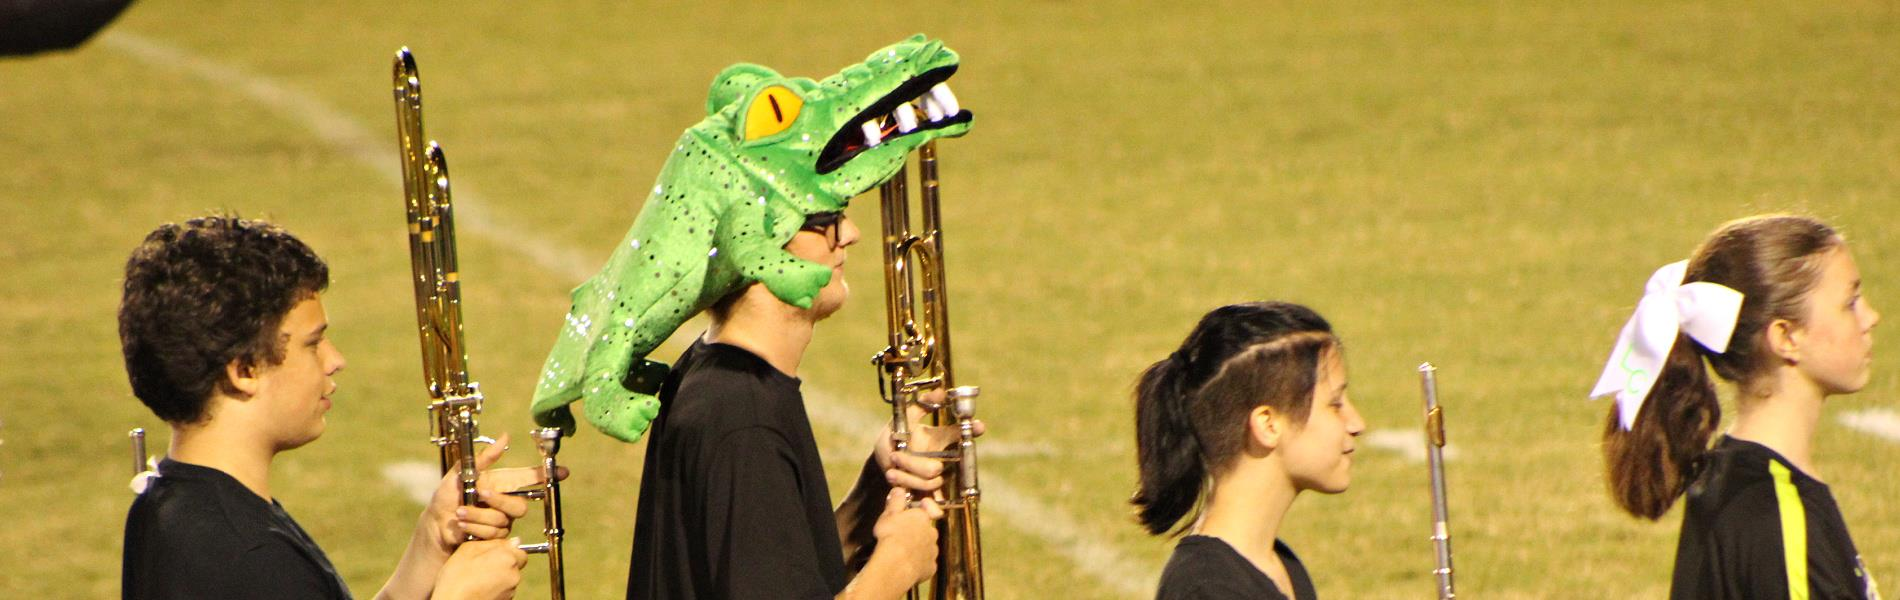 trombone player with gator hat